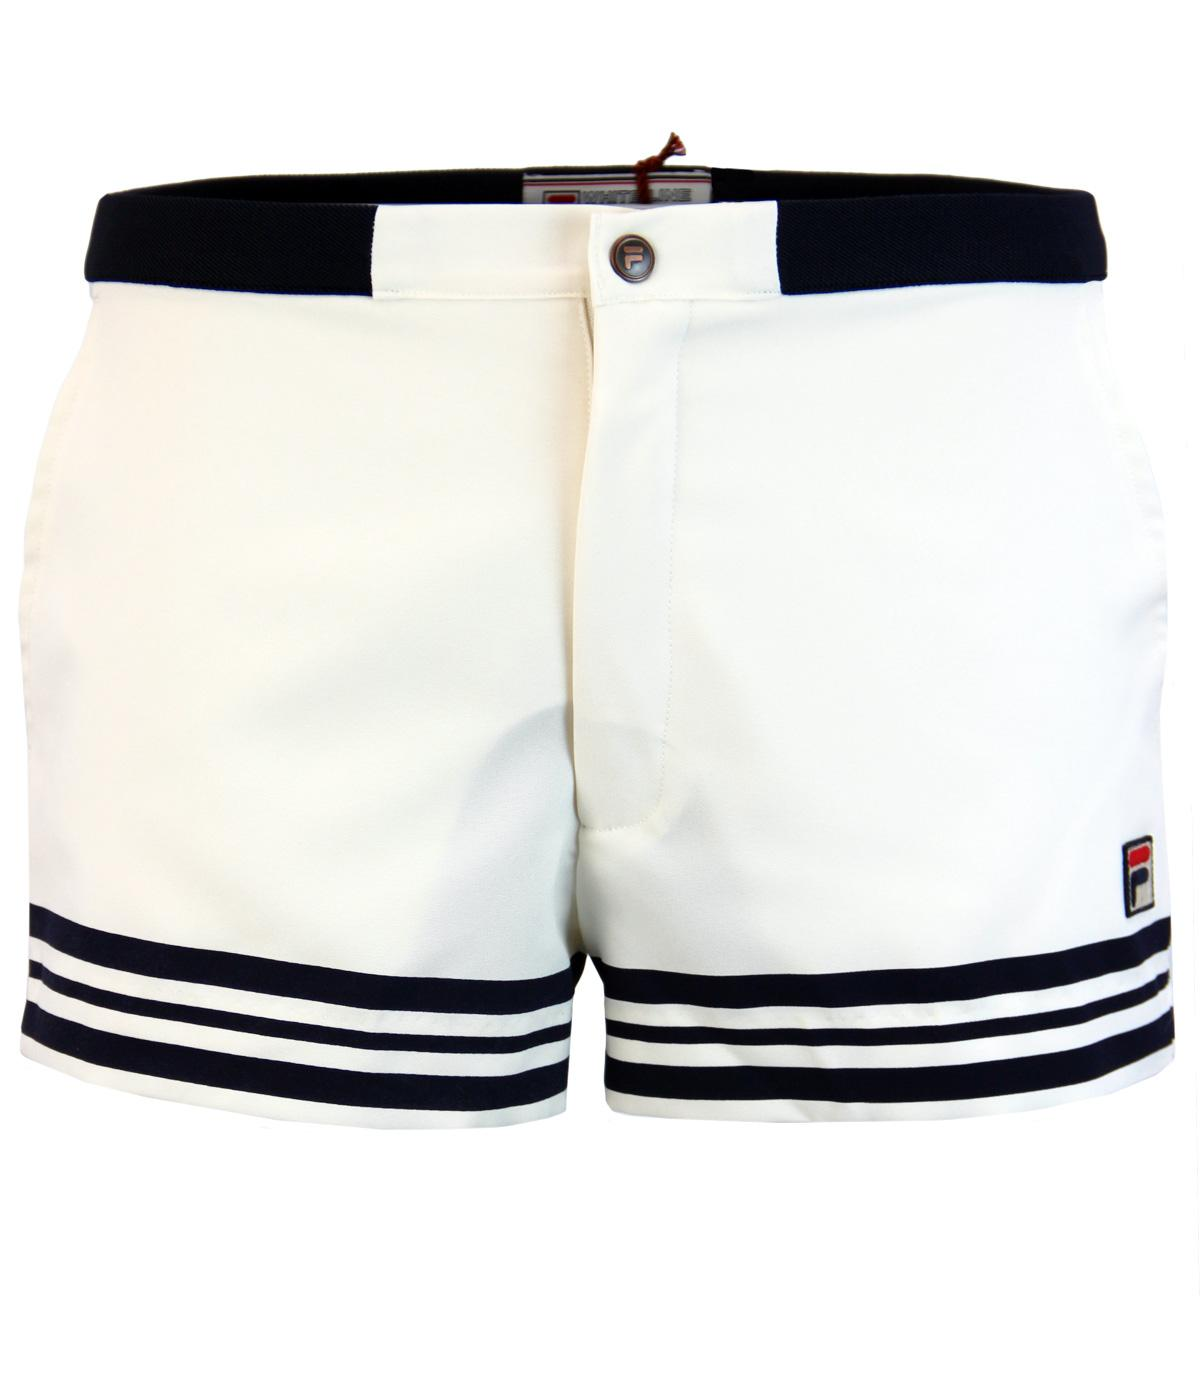 fila tennis shorts 6a638678b